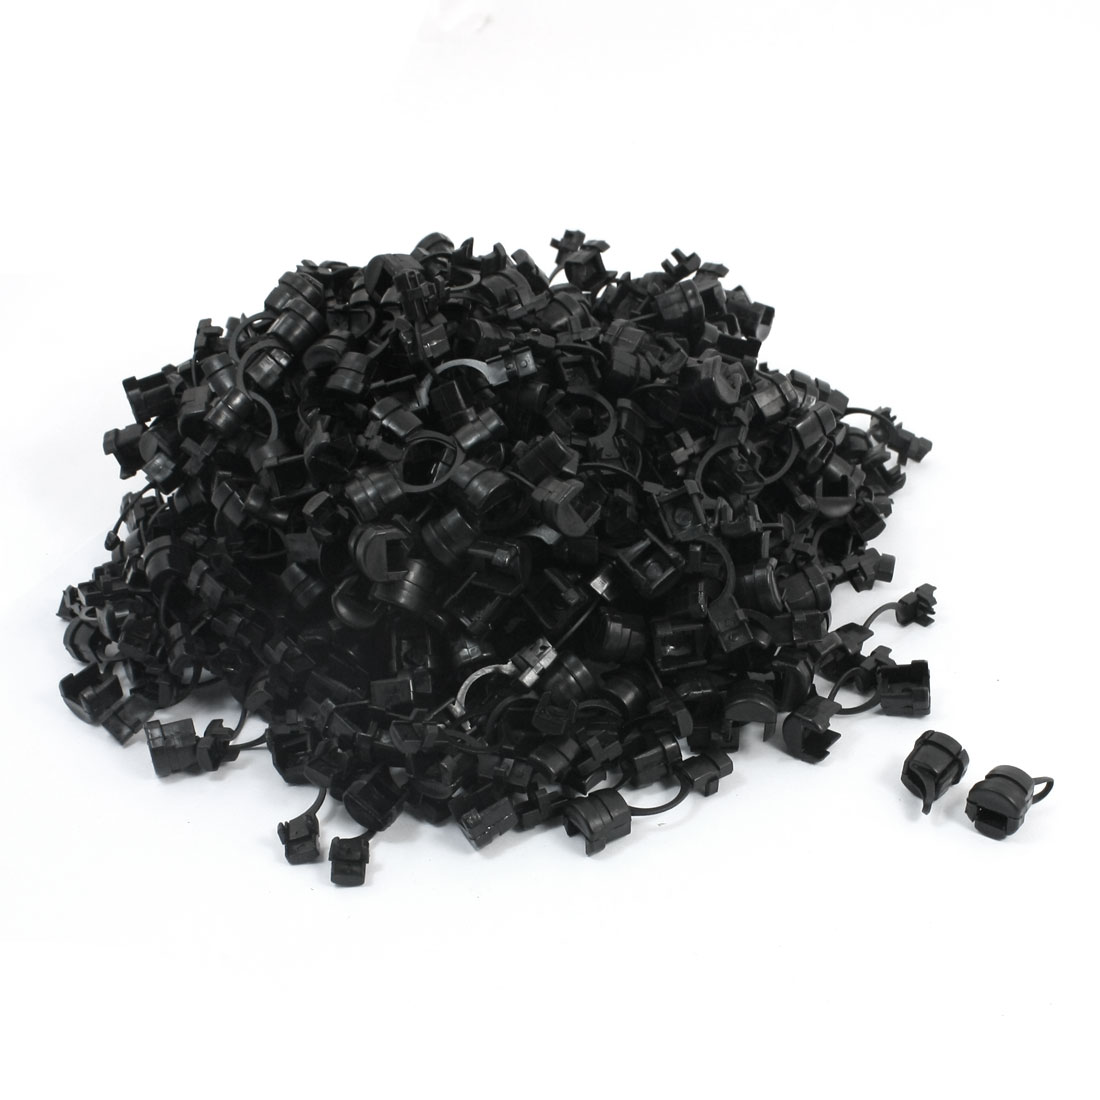 500 Pcs Wires Protectors Strain Relief Bushing for 5mm Width Flat Cables